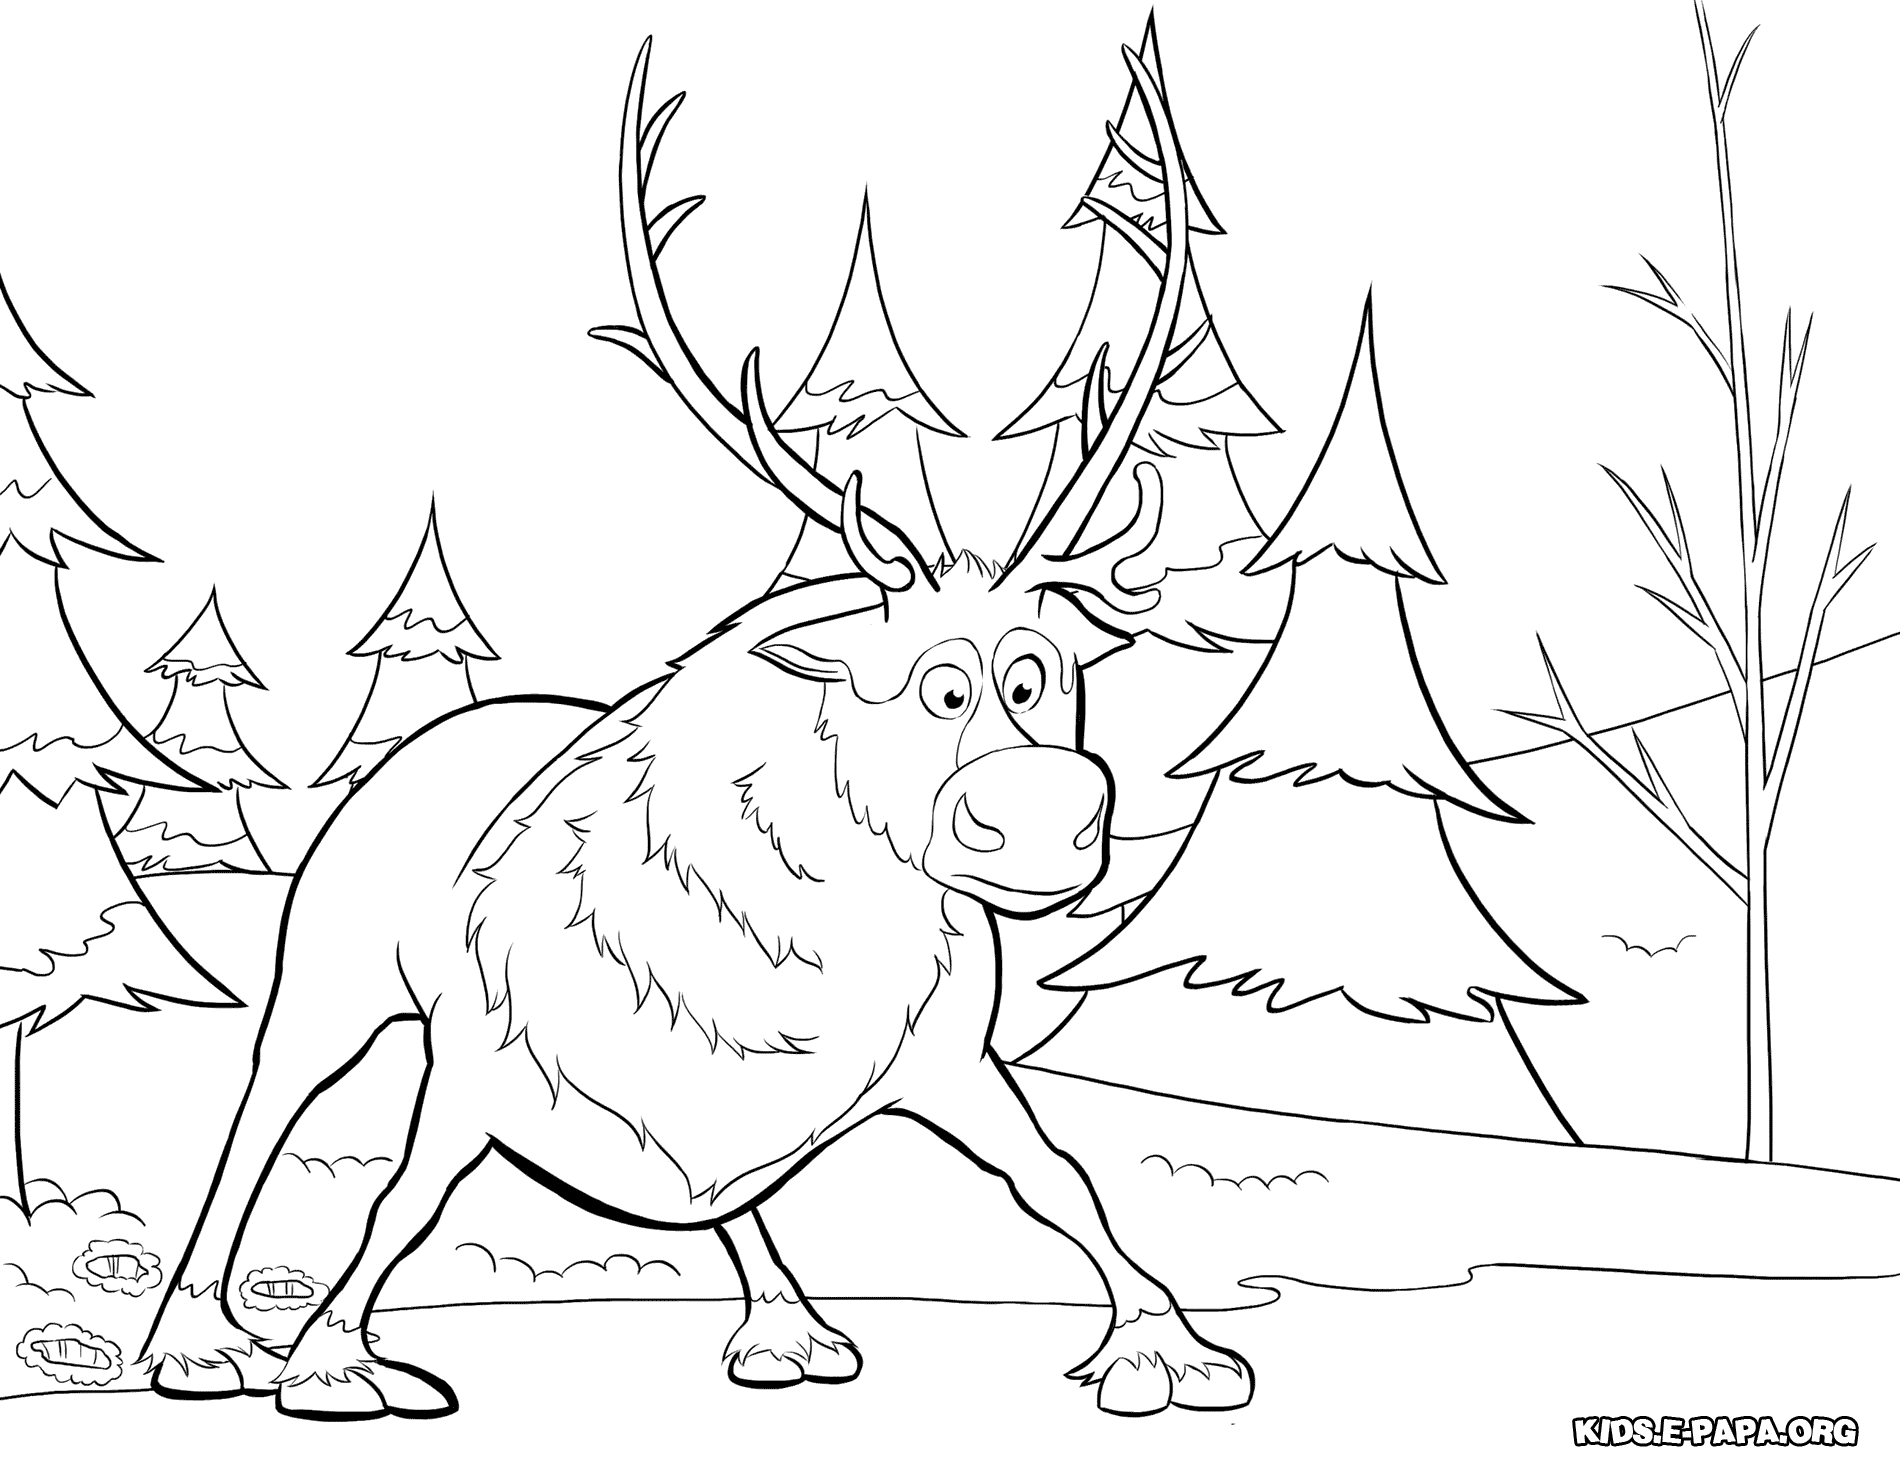 Ausmalbilder f r kinder rentier sven for Sven coloring pages